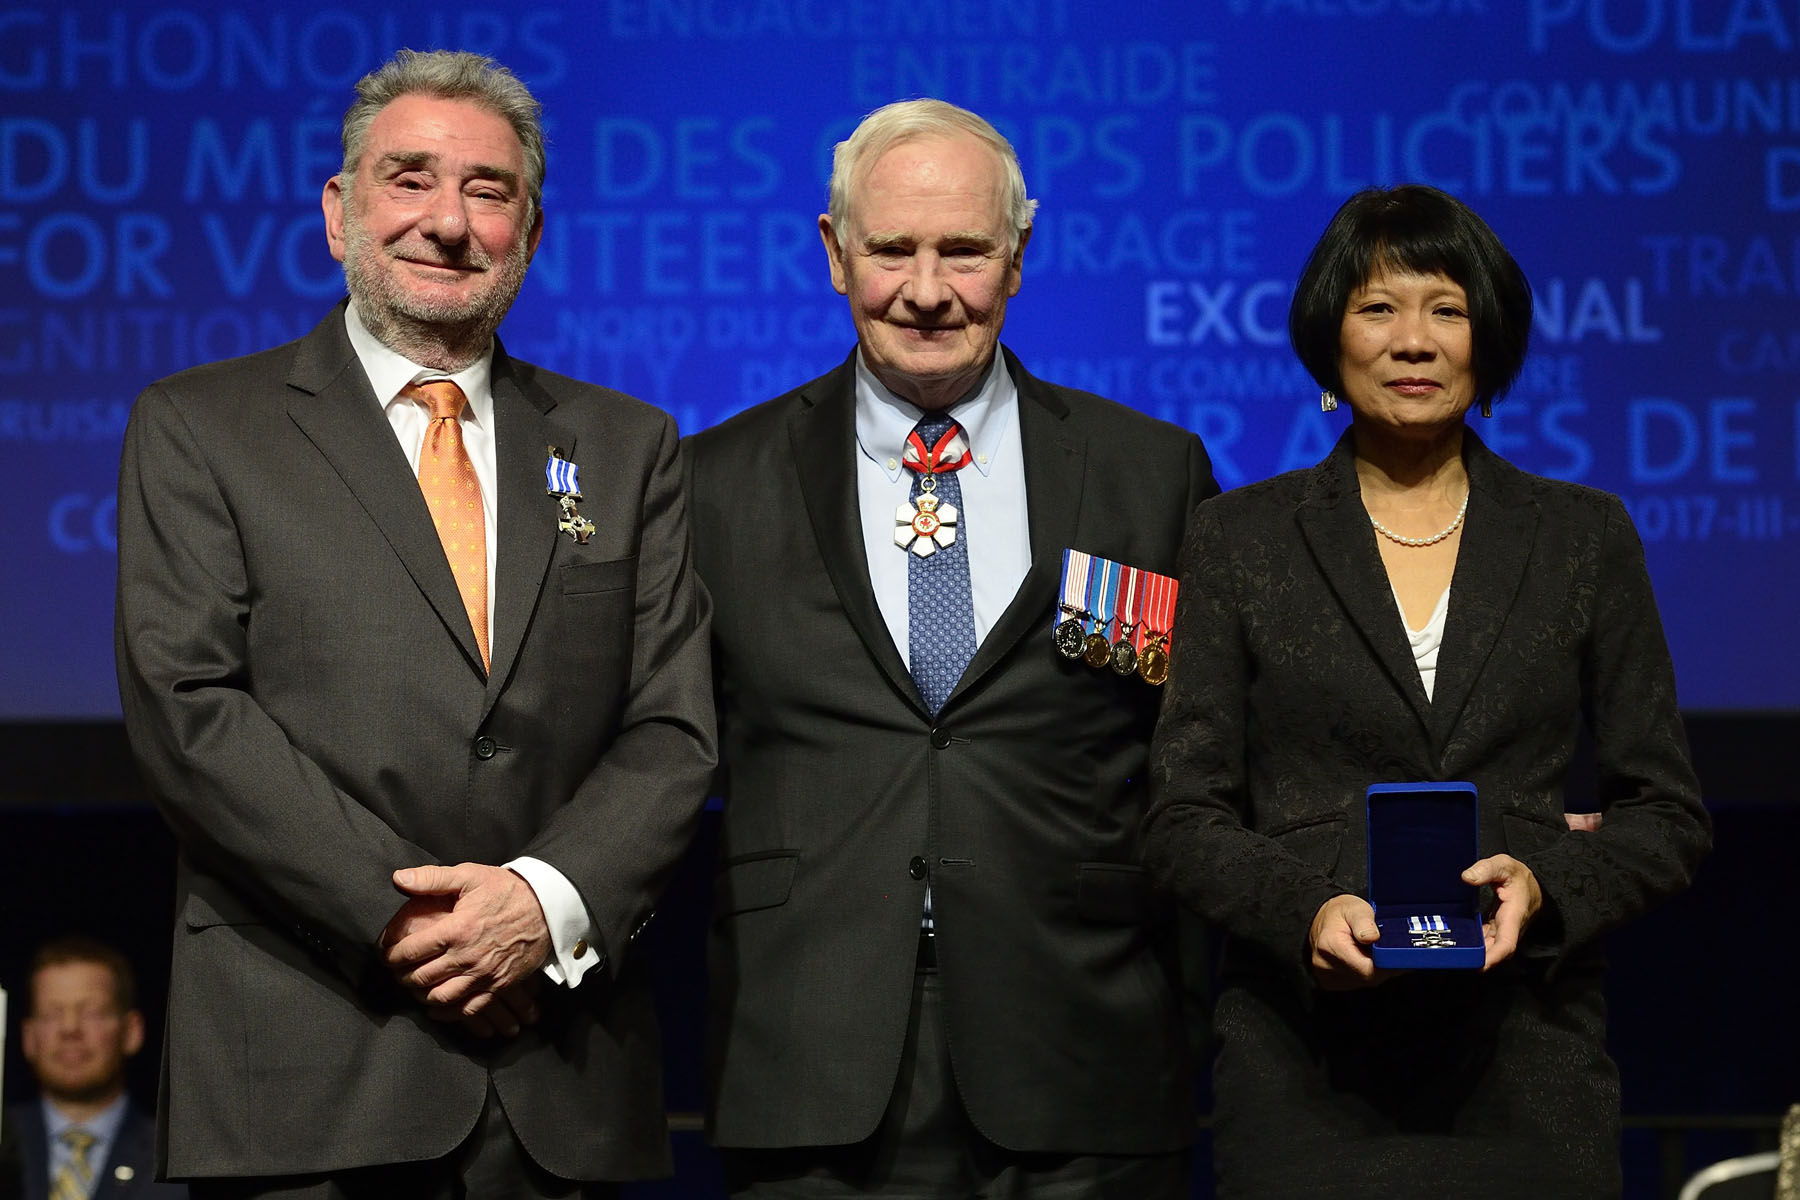 His Excellency presented the Meritorious Service Cross (Civil Division) to The Honourable Jack Layton, P.C., M.S.C. (posthumous) and Ronald Sluser, M.S.C. Michael Kaufman, M.S.C. Michael Kaufman, Jack Layton and Ron Sluser challenged negative concepts of masculinity by getting men to talk about gender equality. Their efforts sparked the White Ribbon Campaign, which encourages men and boys to pledge to never commit, condone or remain silent about violence against women and girls. Today, the movement has spread to 60 countries, and continues to promote a safe and equitable future by having fathers and other male role models talk to boys about respect and healthy relationships. The Meritorious Service Cross awarded to Dr. Kaufman will be presented to him at a later date. The Meritorious Service Cross awarded to the late Honourable Jack Layton was presented to his spouse, Ms. Olivia Chow.